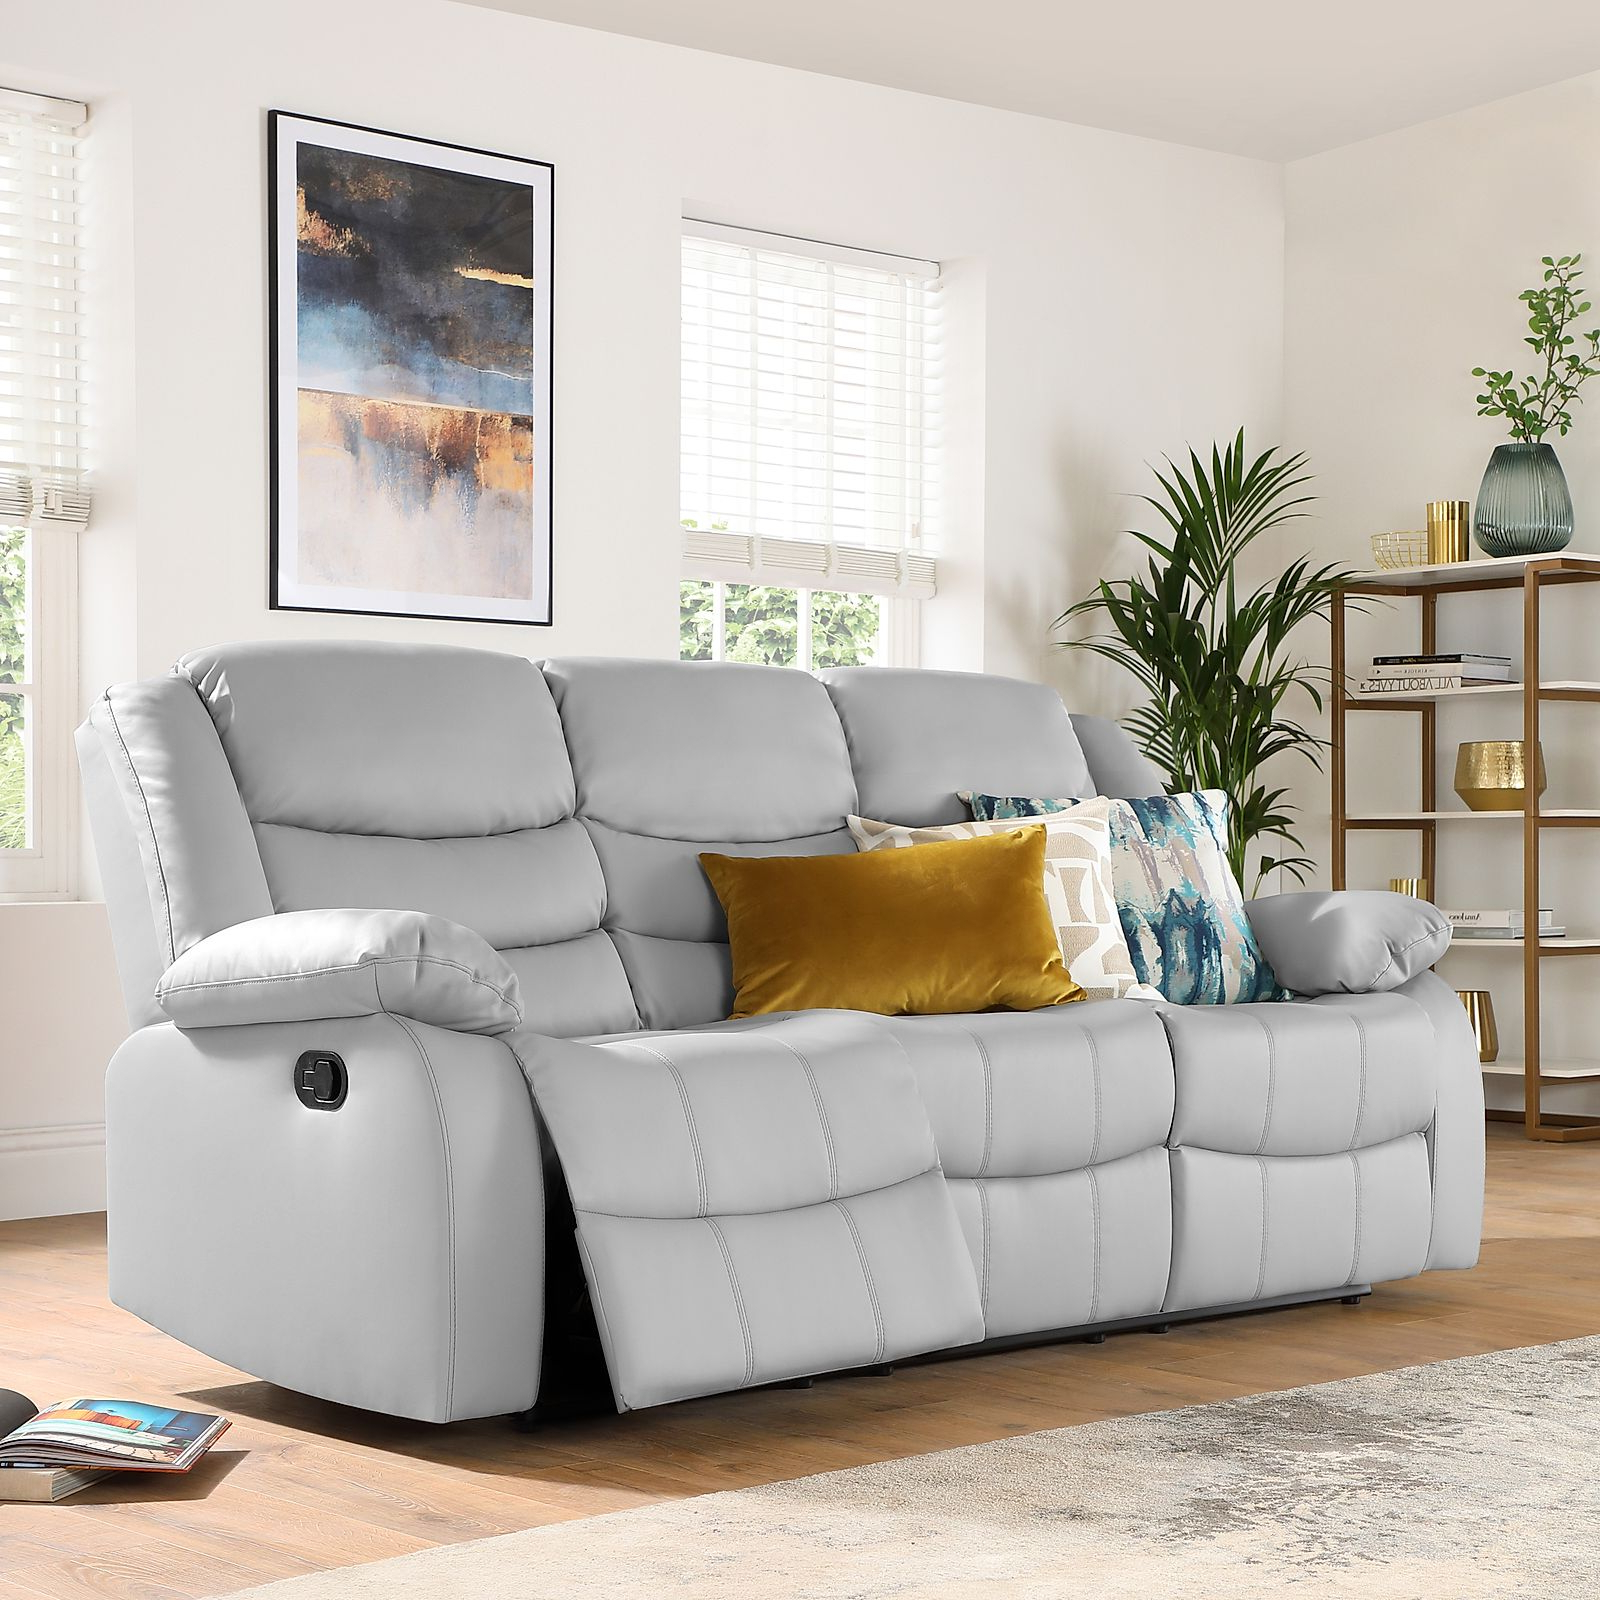 Most Current Gray Sofas Inside Sorrento Light Grey Leather 3 Seater Recliner Sofa (View 14 of 15)